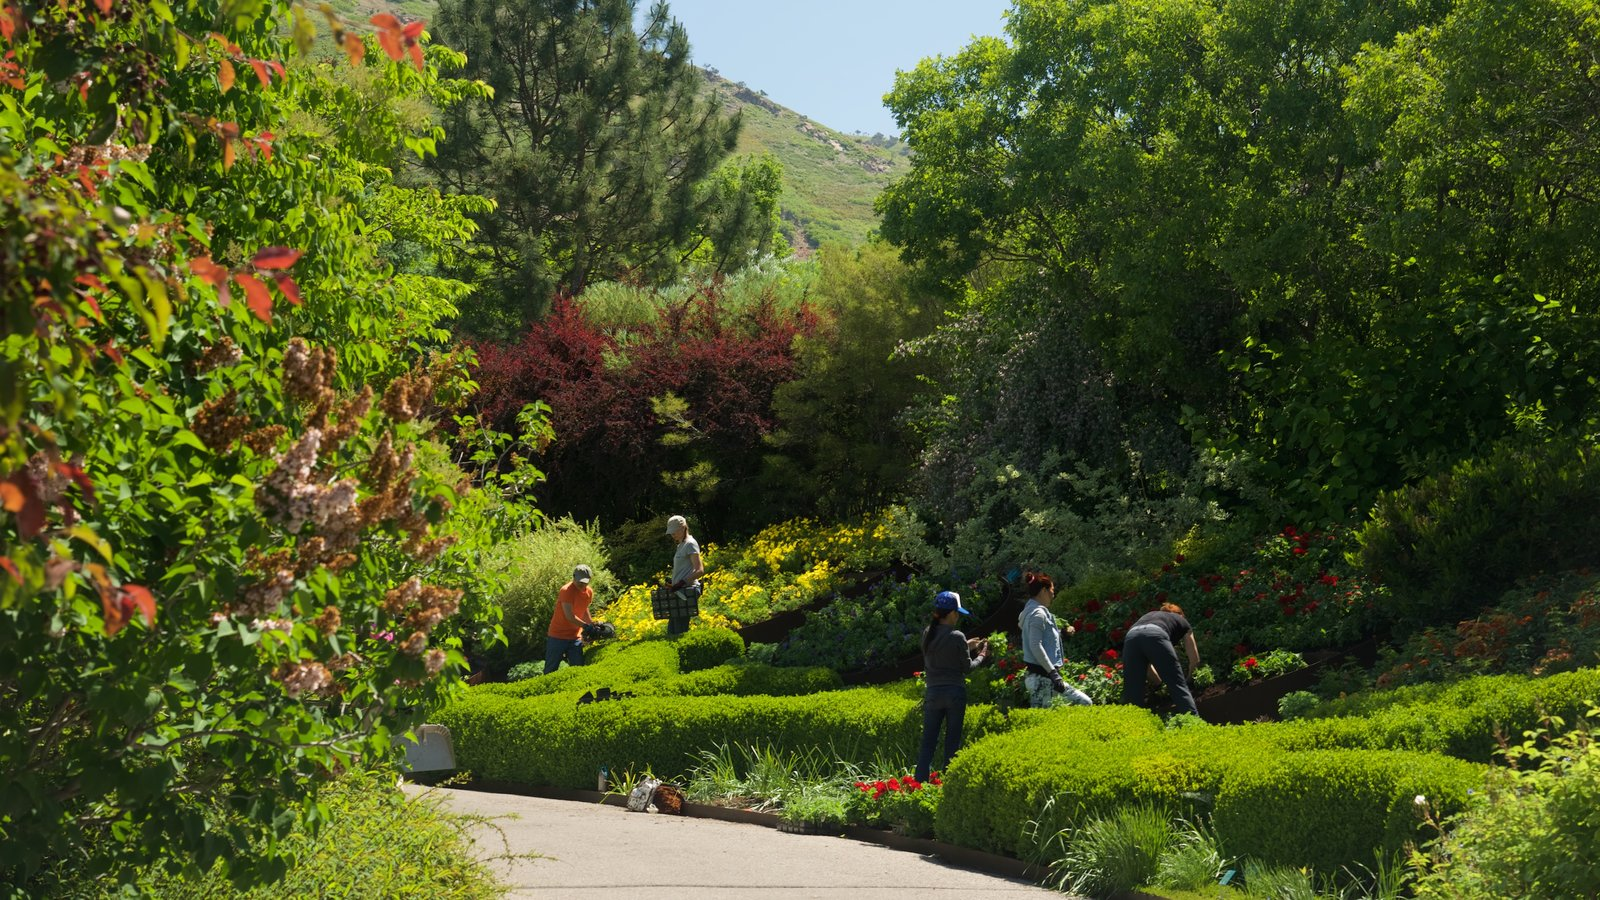 Red Butte Garden and Arboreteum showing a park as well as a small group of people